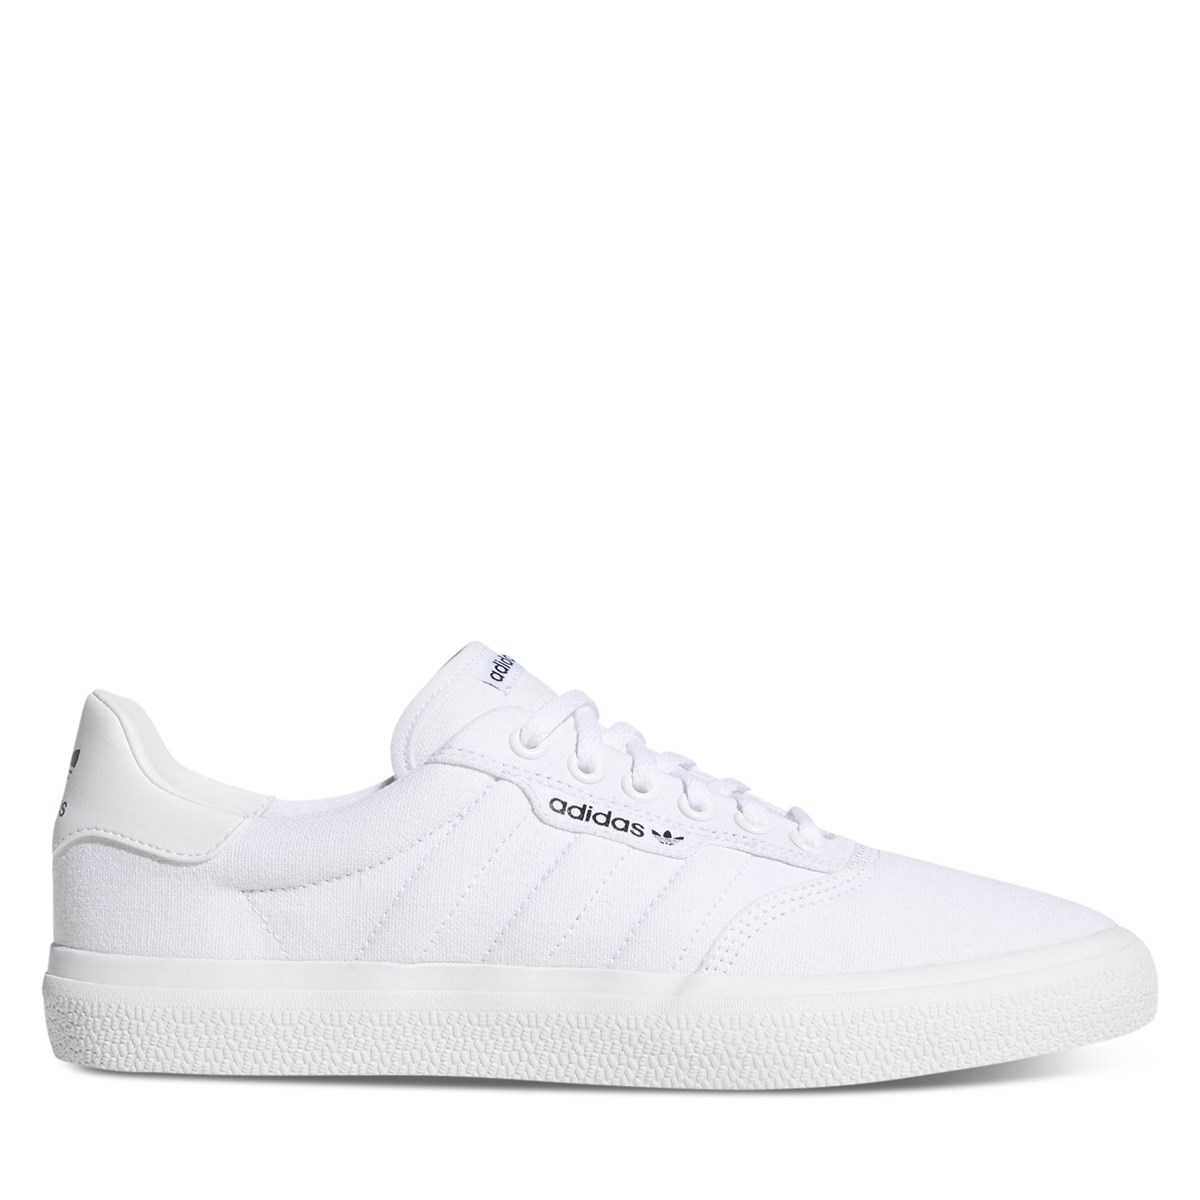 Men s 3MC Vulc Sneakers in White. Previous. default view ... 03b5aca98